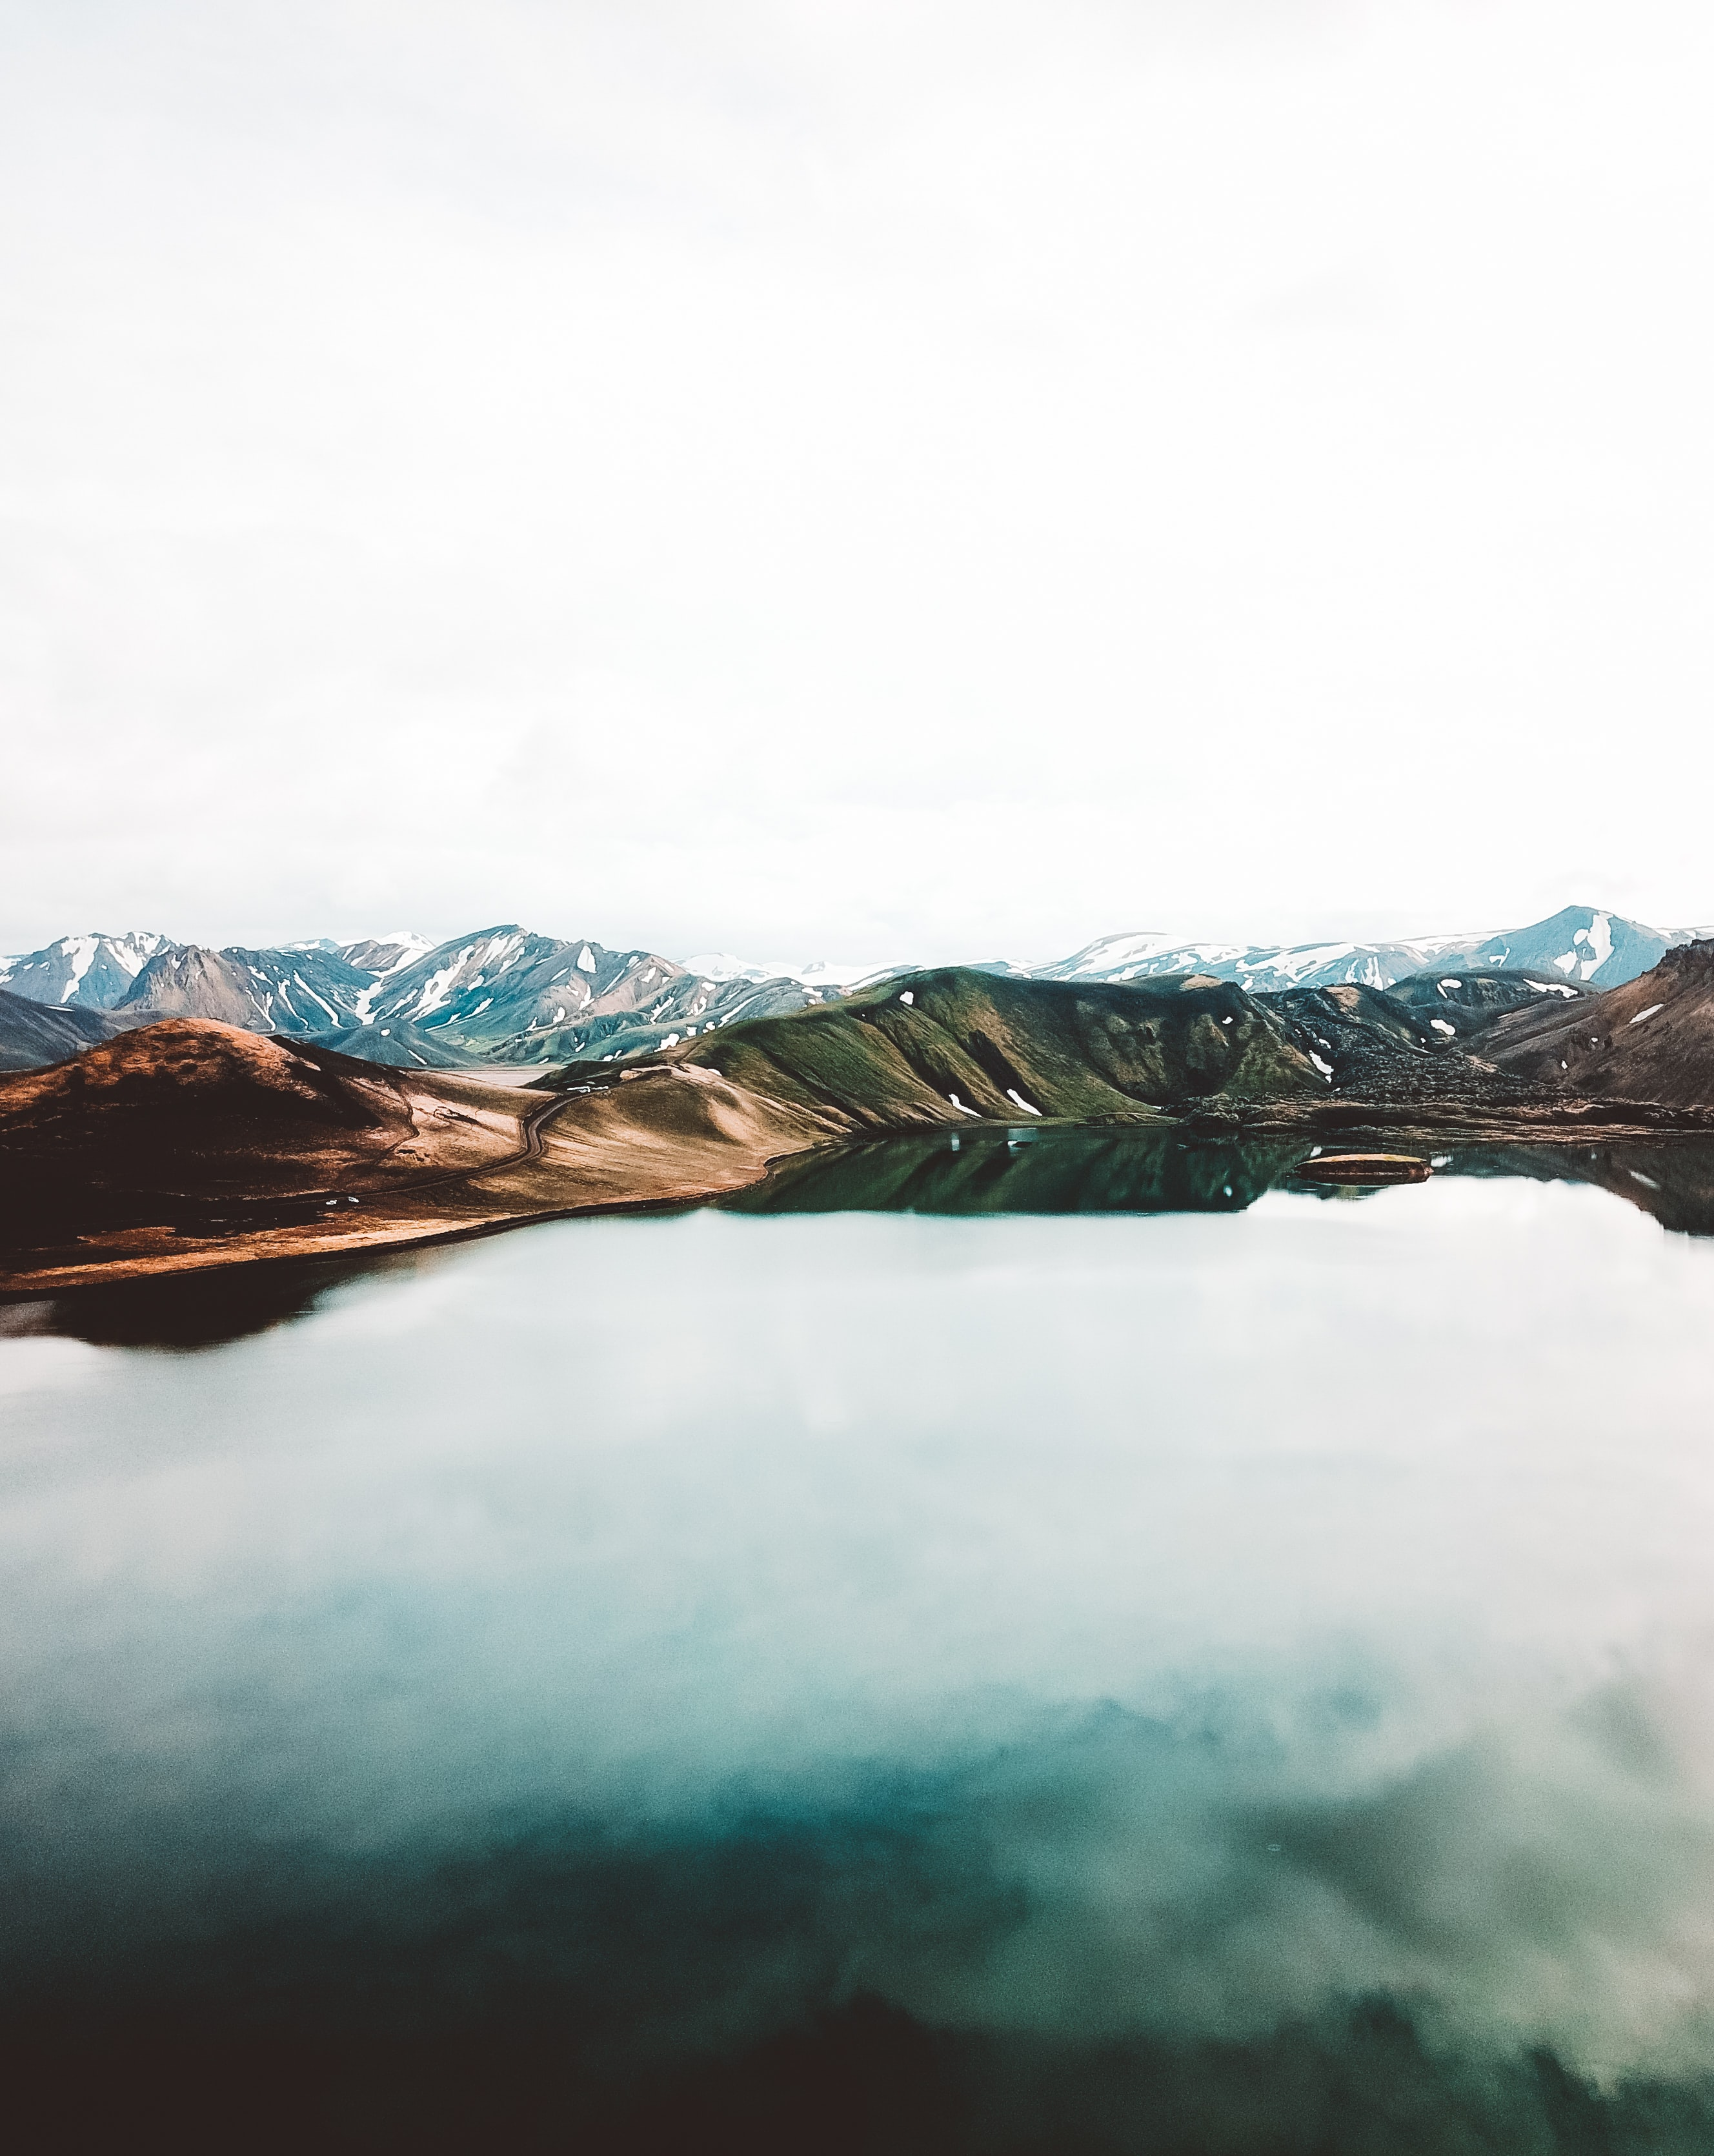 body of water across brown mountain